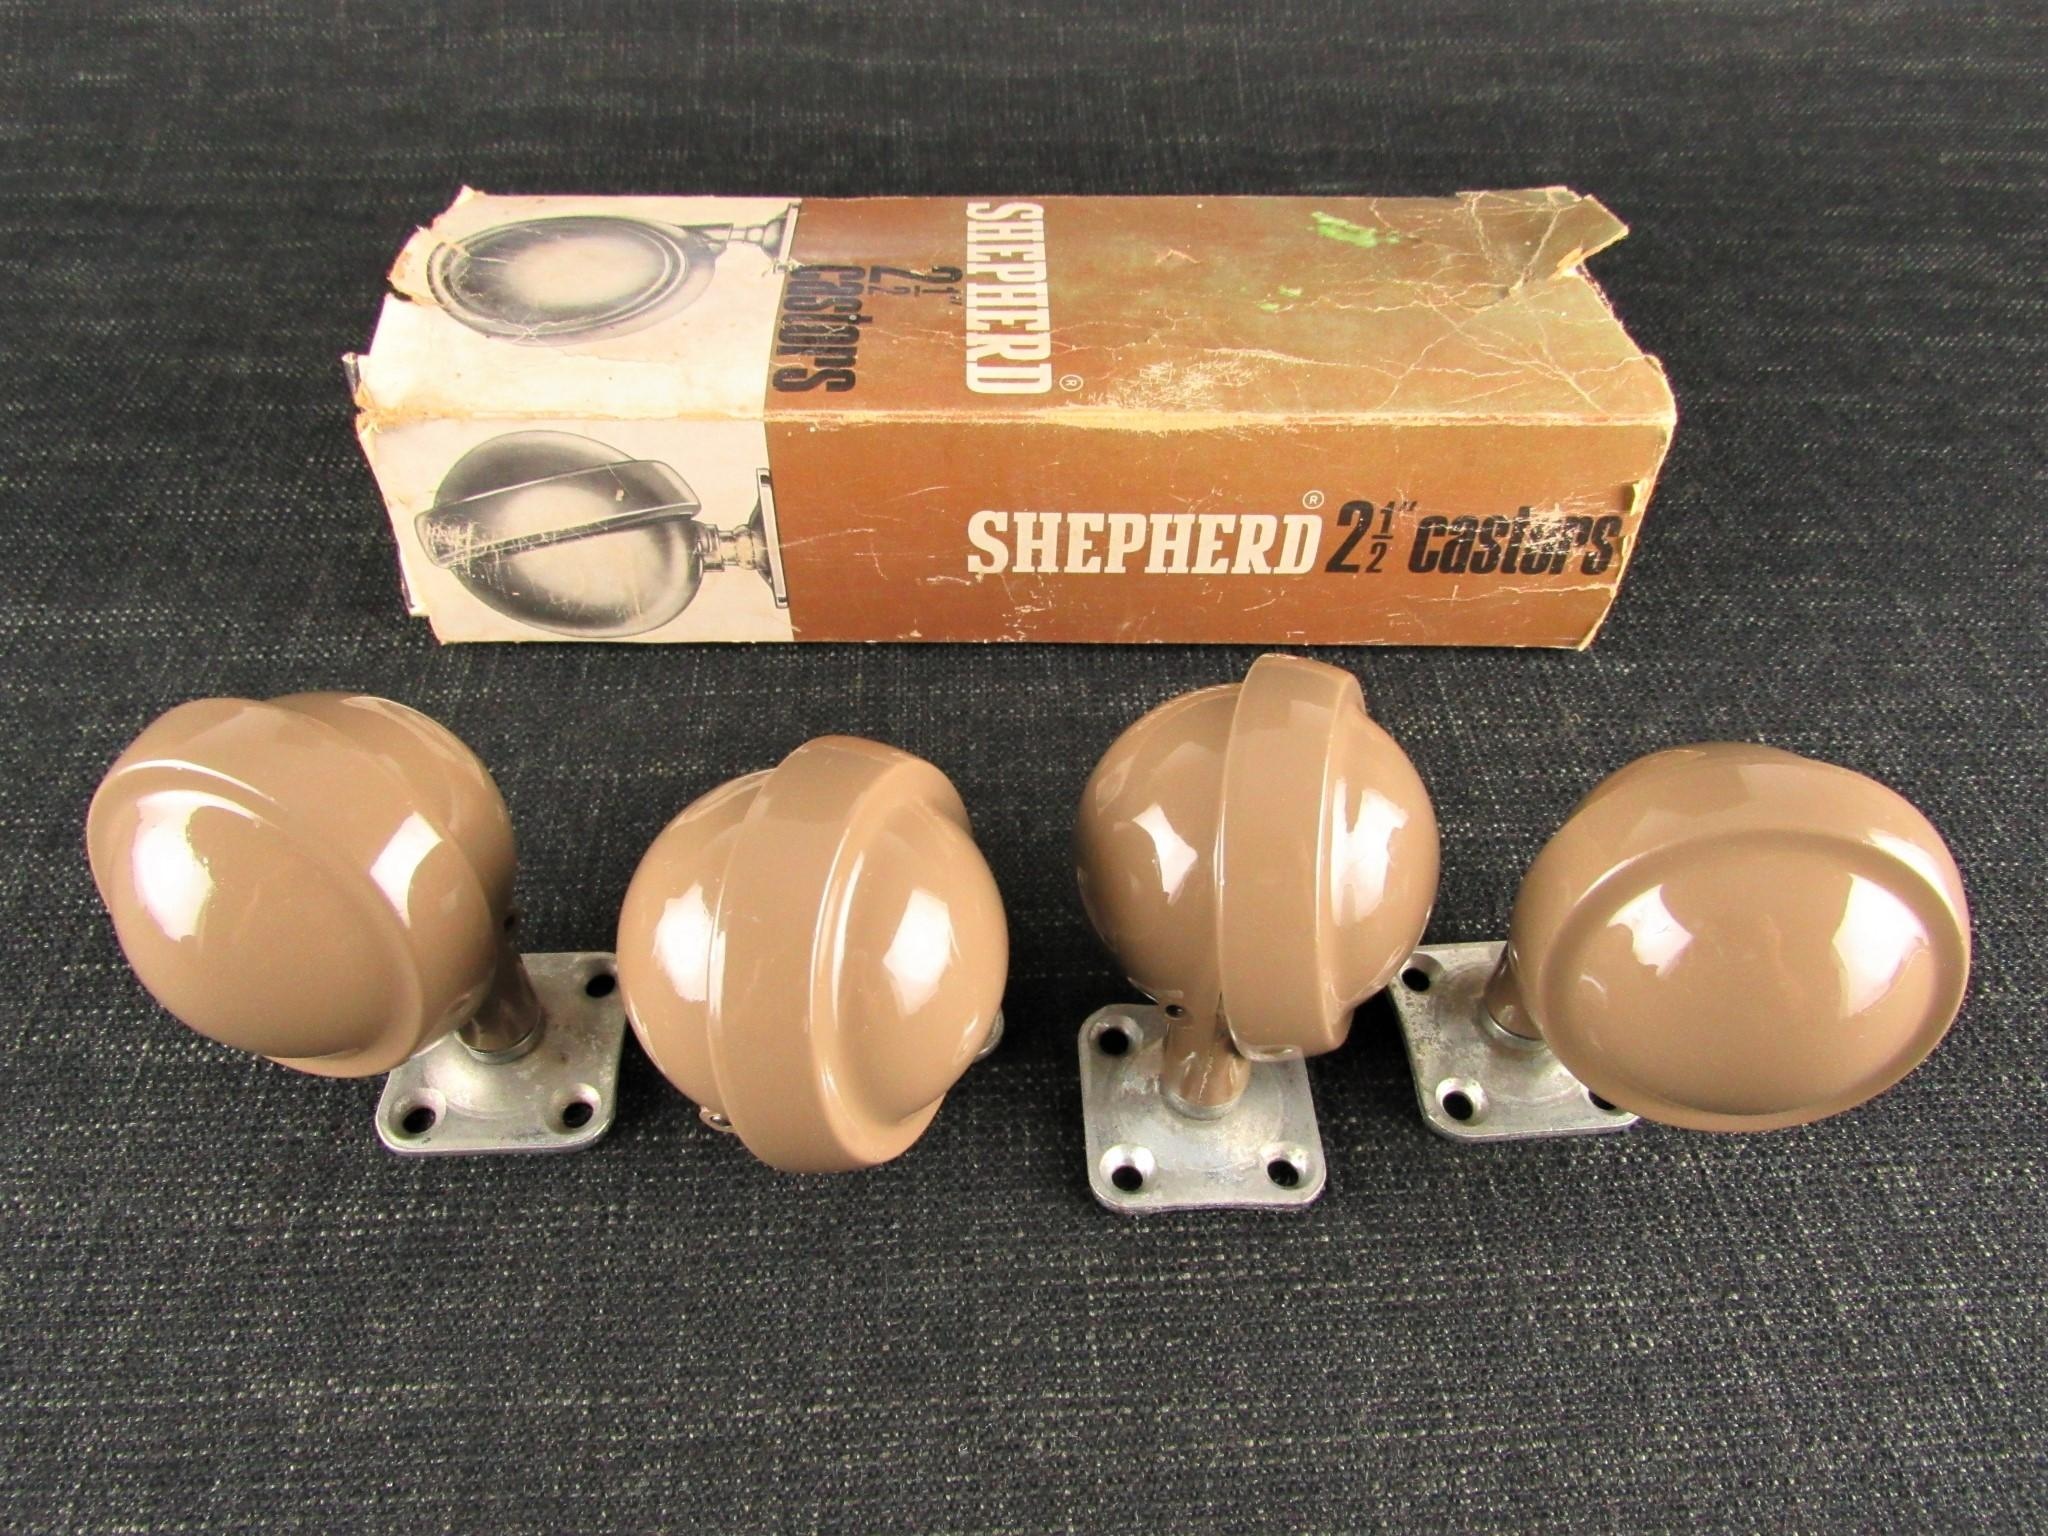 Set of 4 Vintage SHEPHERD 51 Castors - 2 1/2 inch